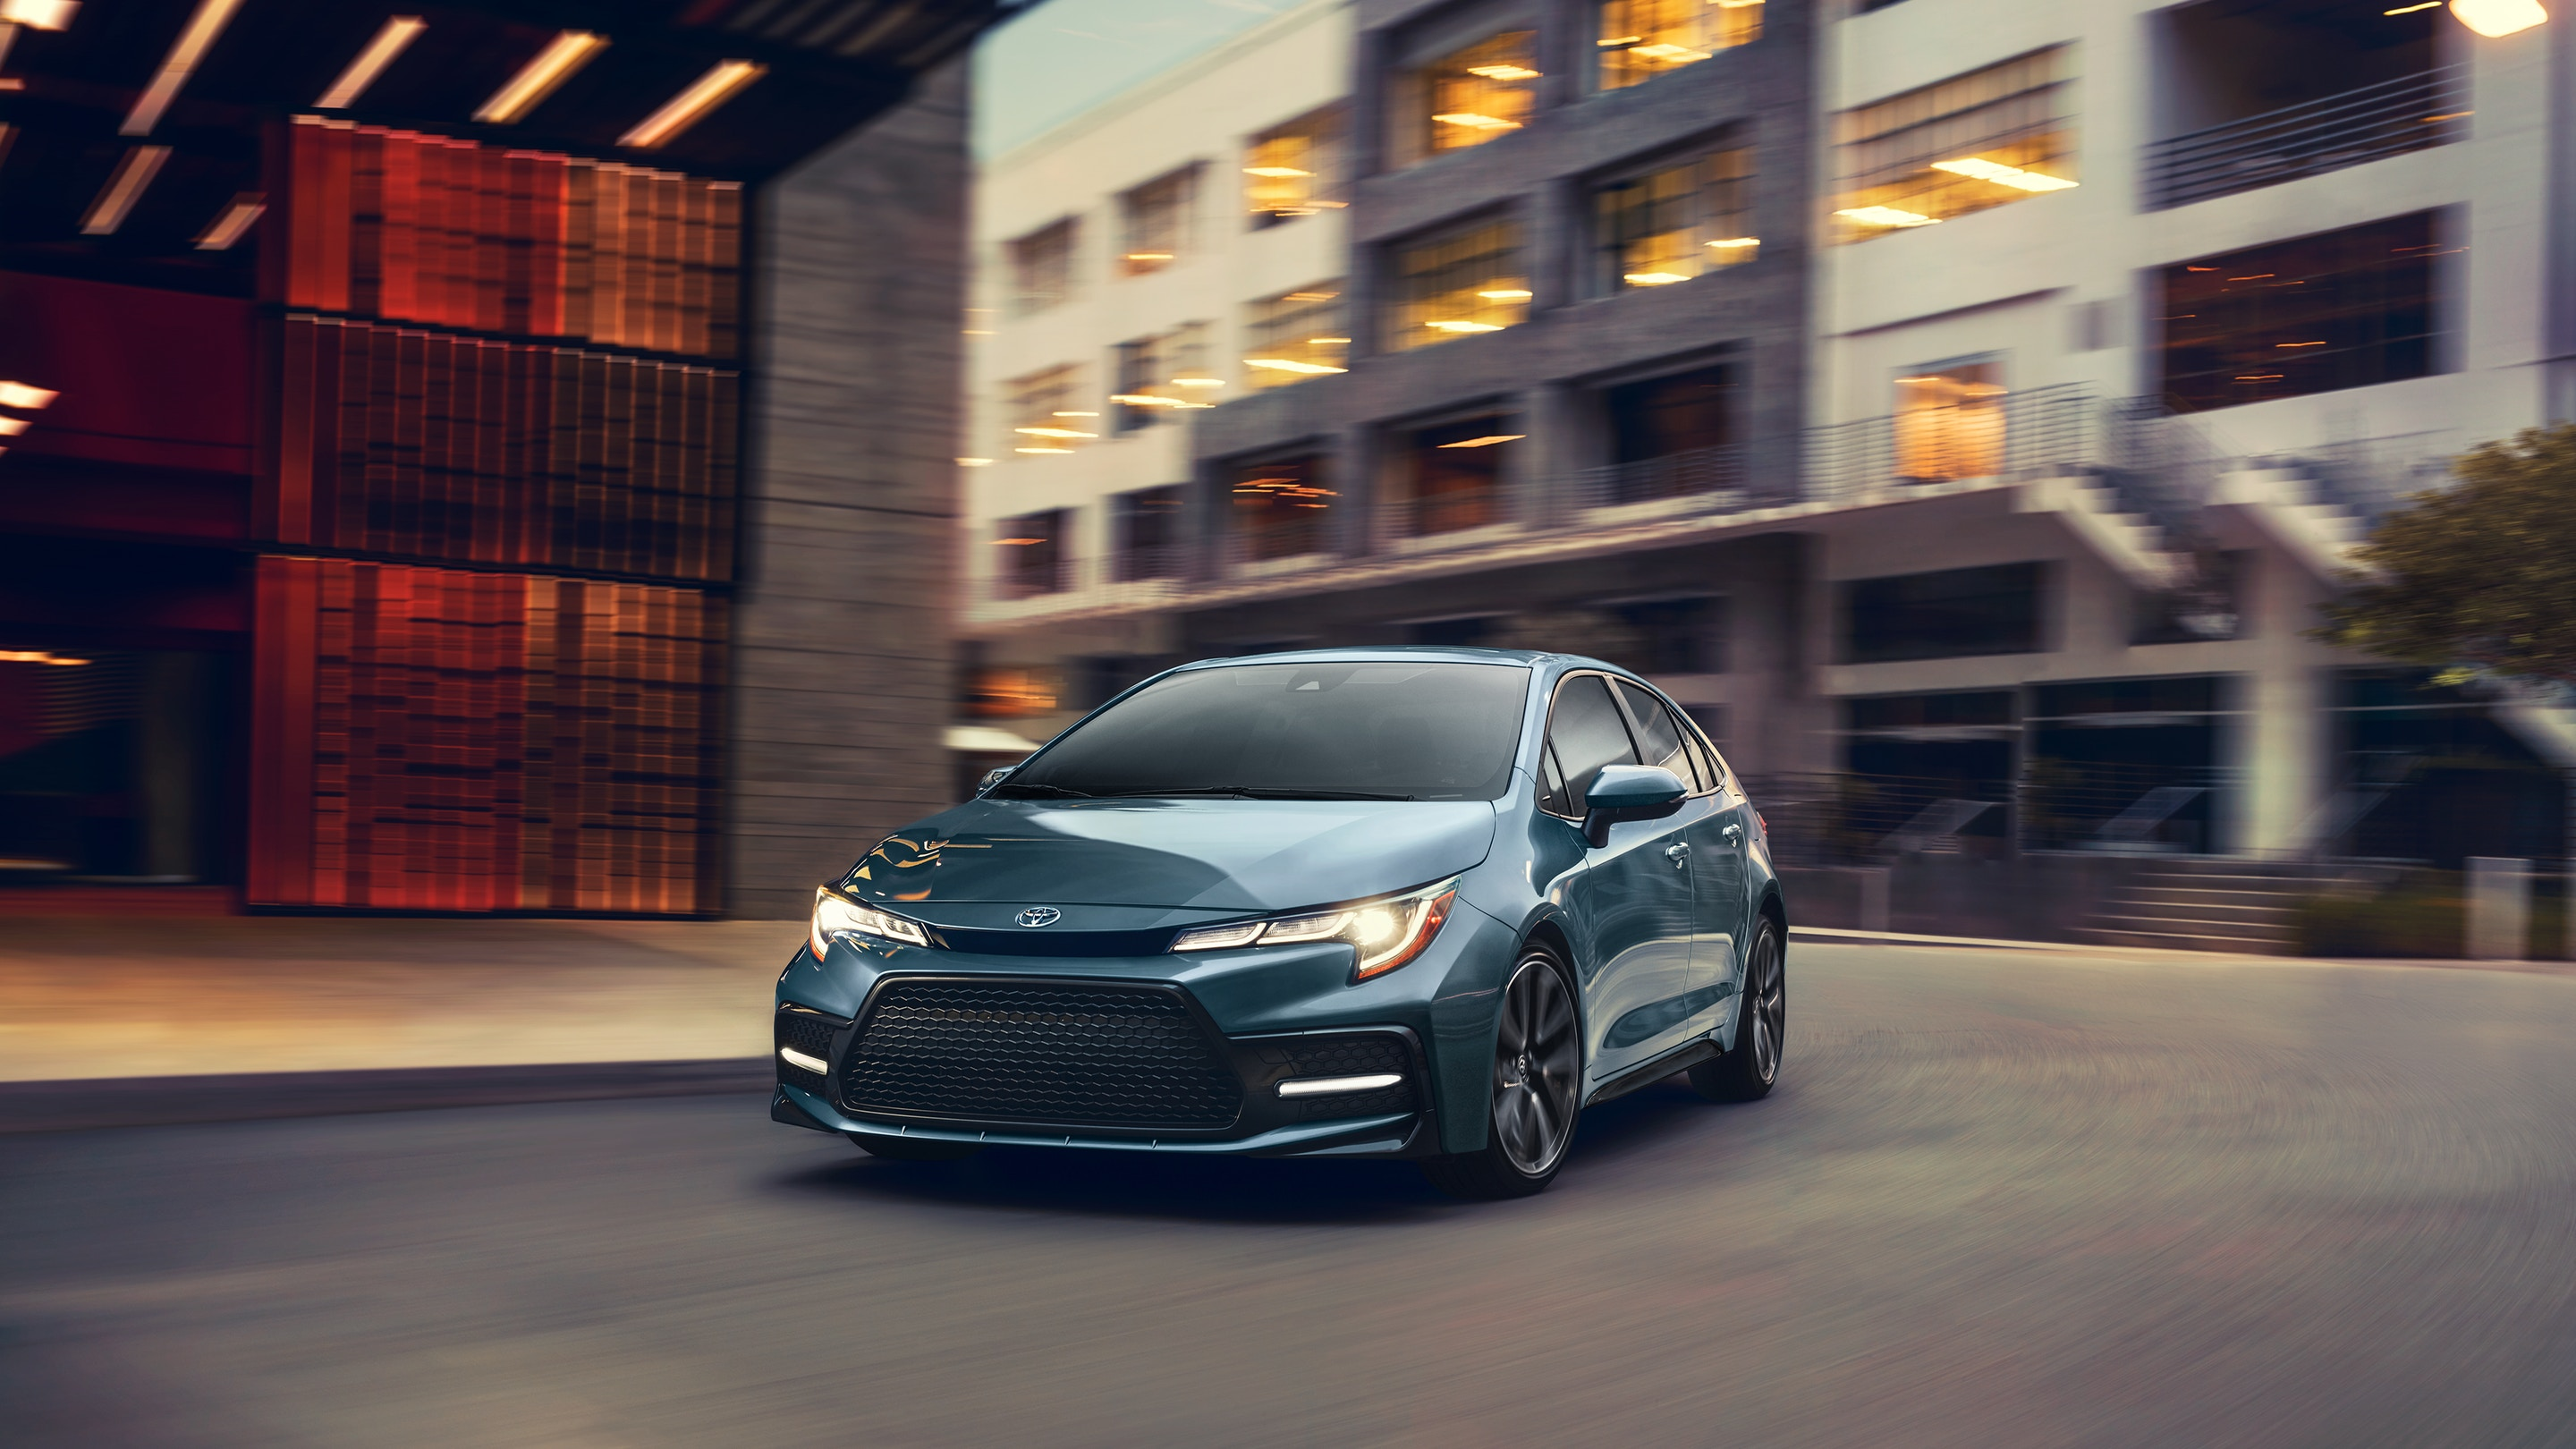 2020 Toyota Corolla vs 2019 Honda Civic near Stamford, CT